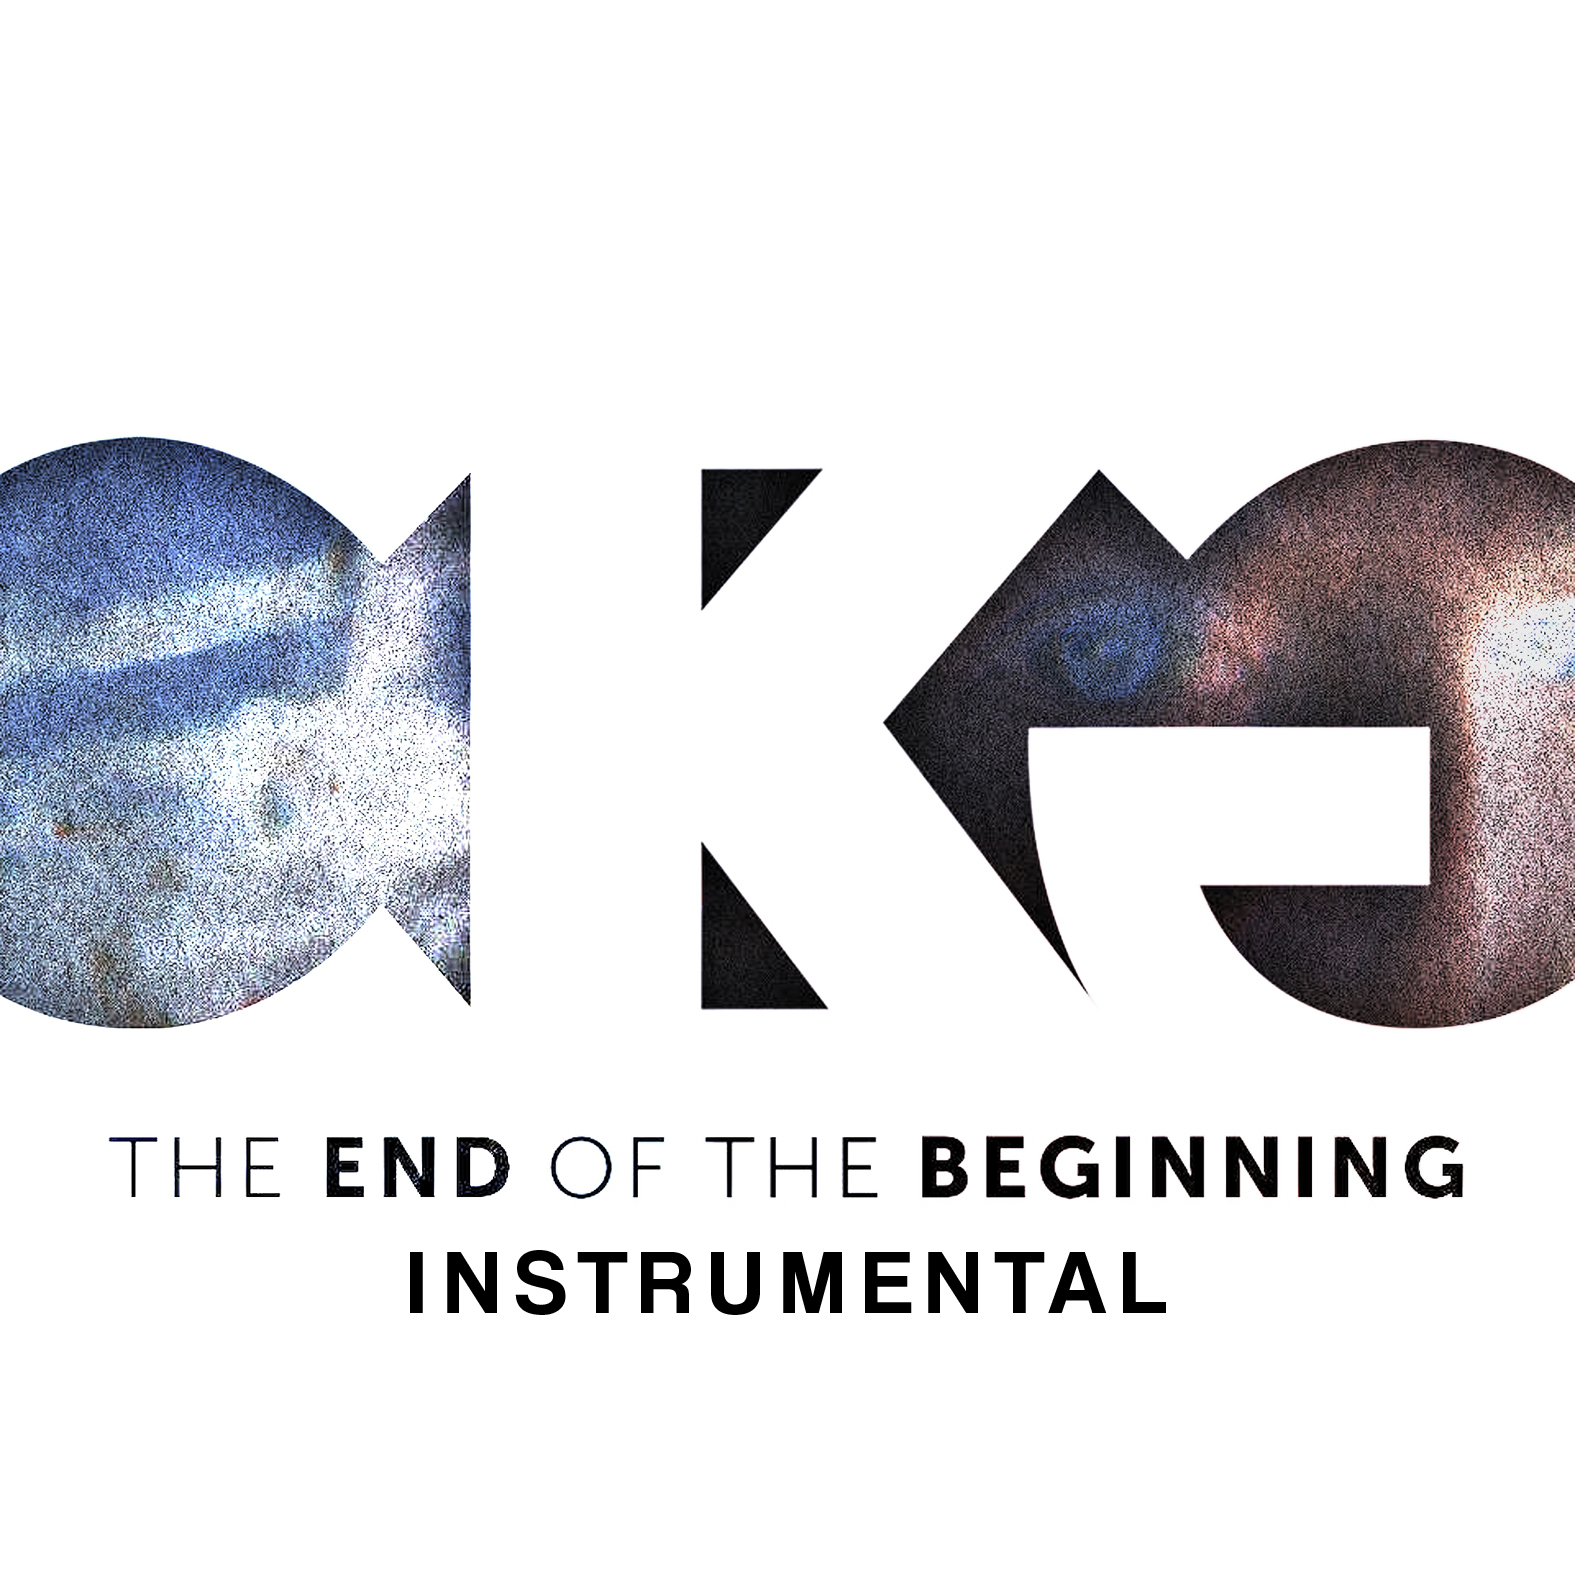 The End of the Beginning Instrumental : Cancer Killing Gemini